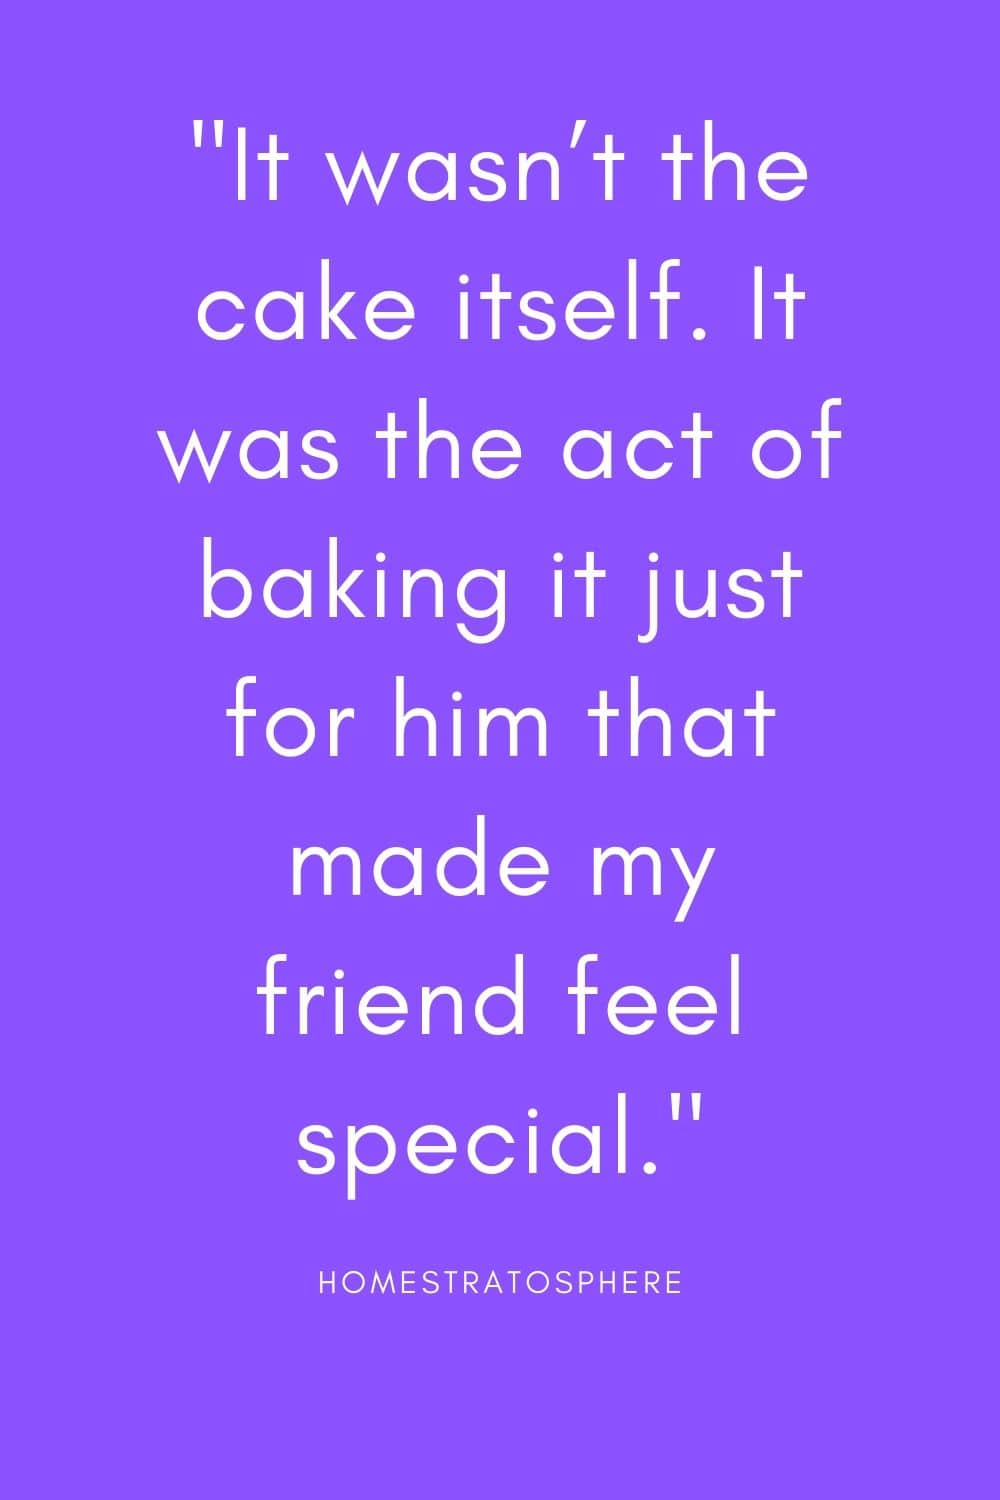 """It wasn't the cake itself. It was the act of baking it just for him that made my friend feel special."""